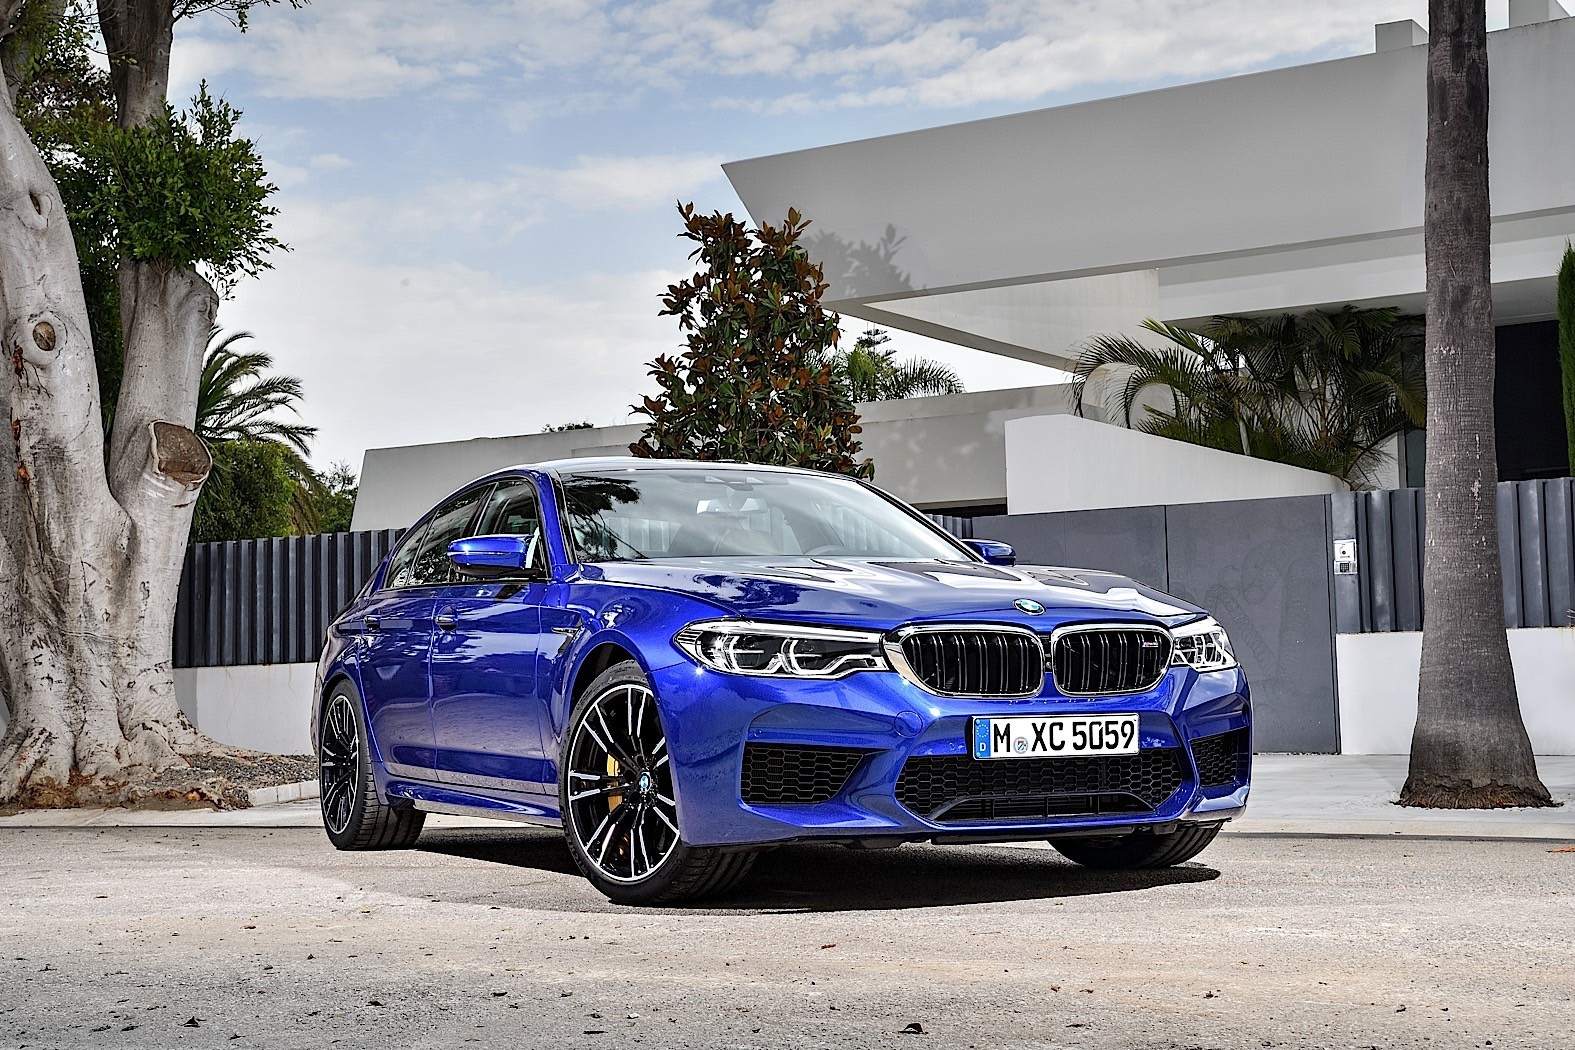 2018 BMW M5 Unveiled With 600 PS, AWD and RWD - autoevolution